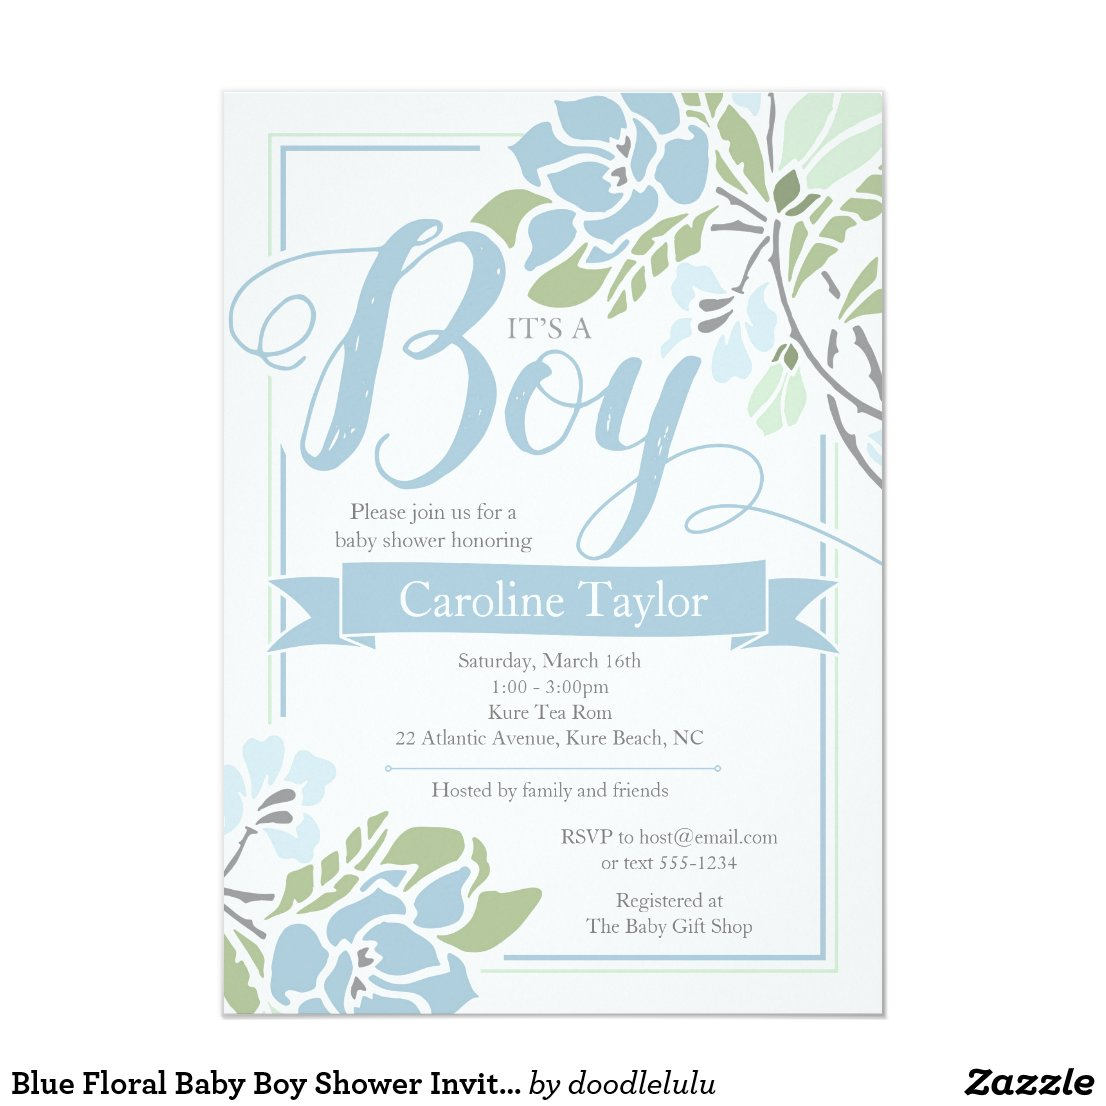 Blue Floral Baby Boy Shower Invitation